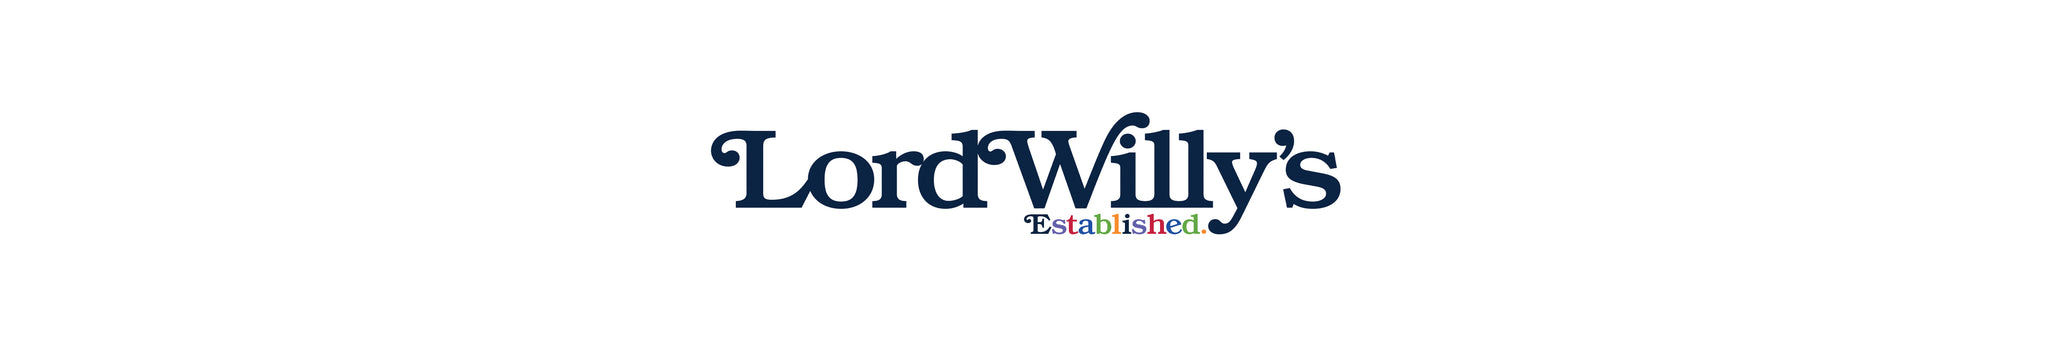 Lord Willy's. Established.